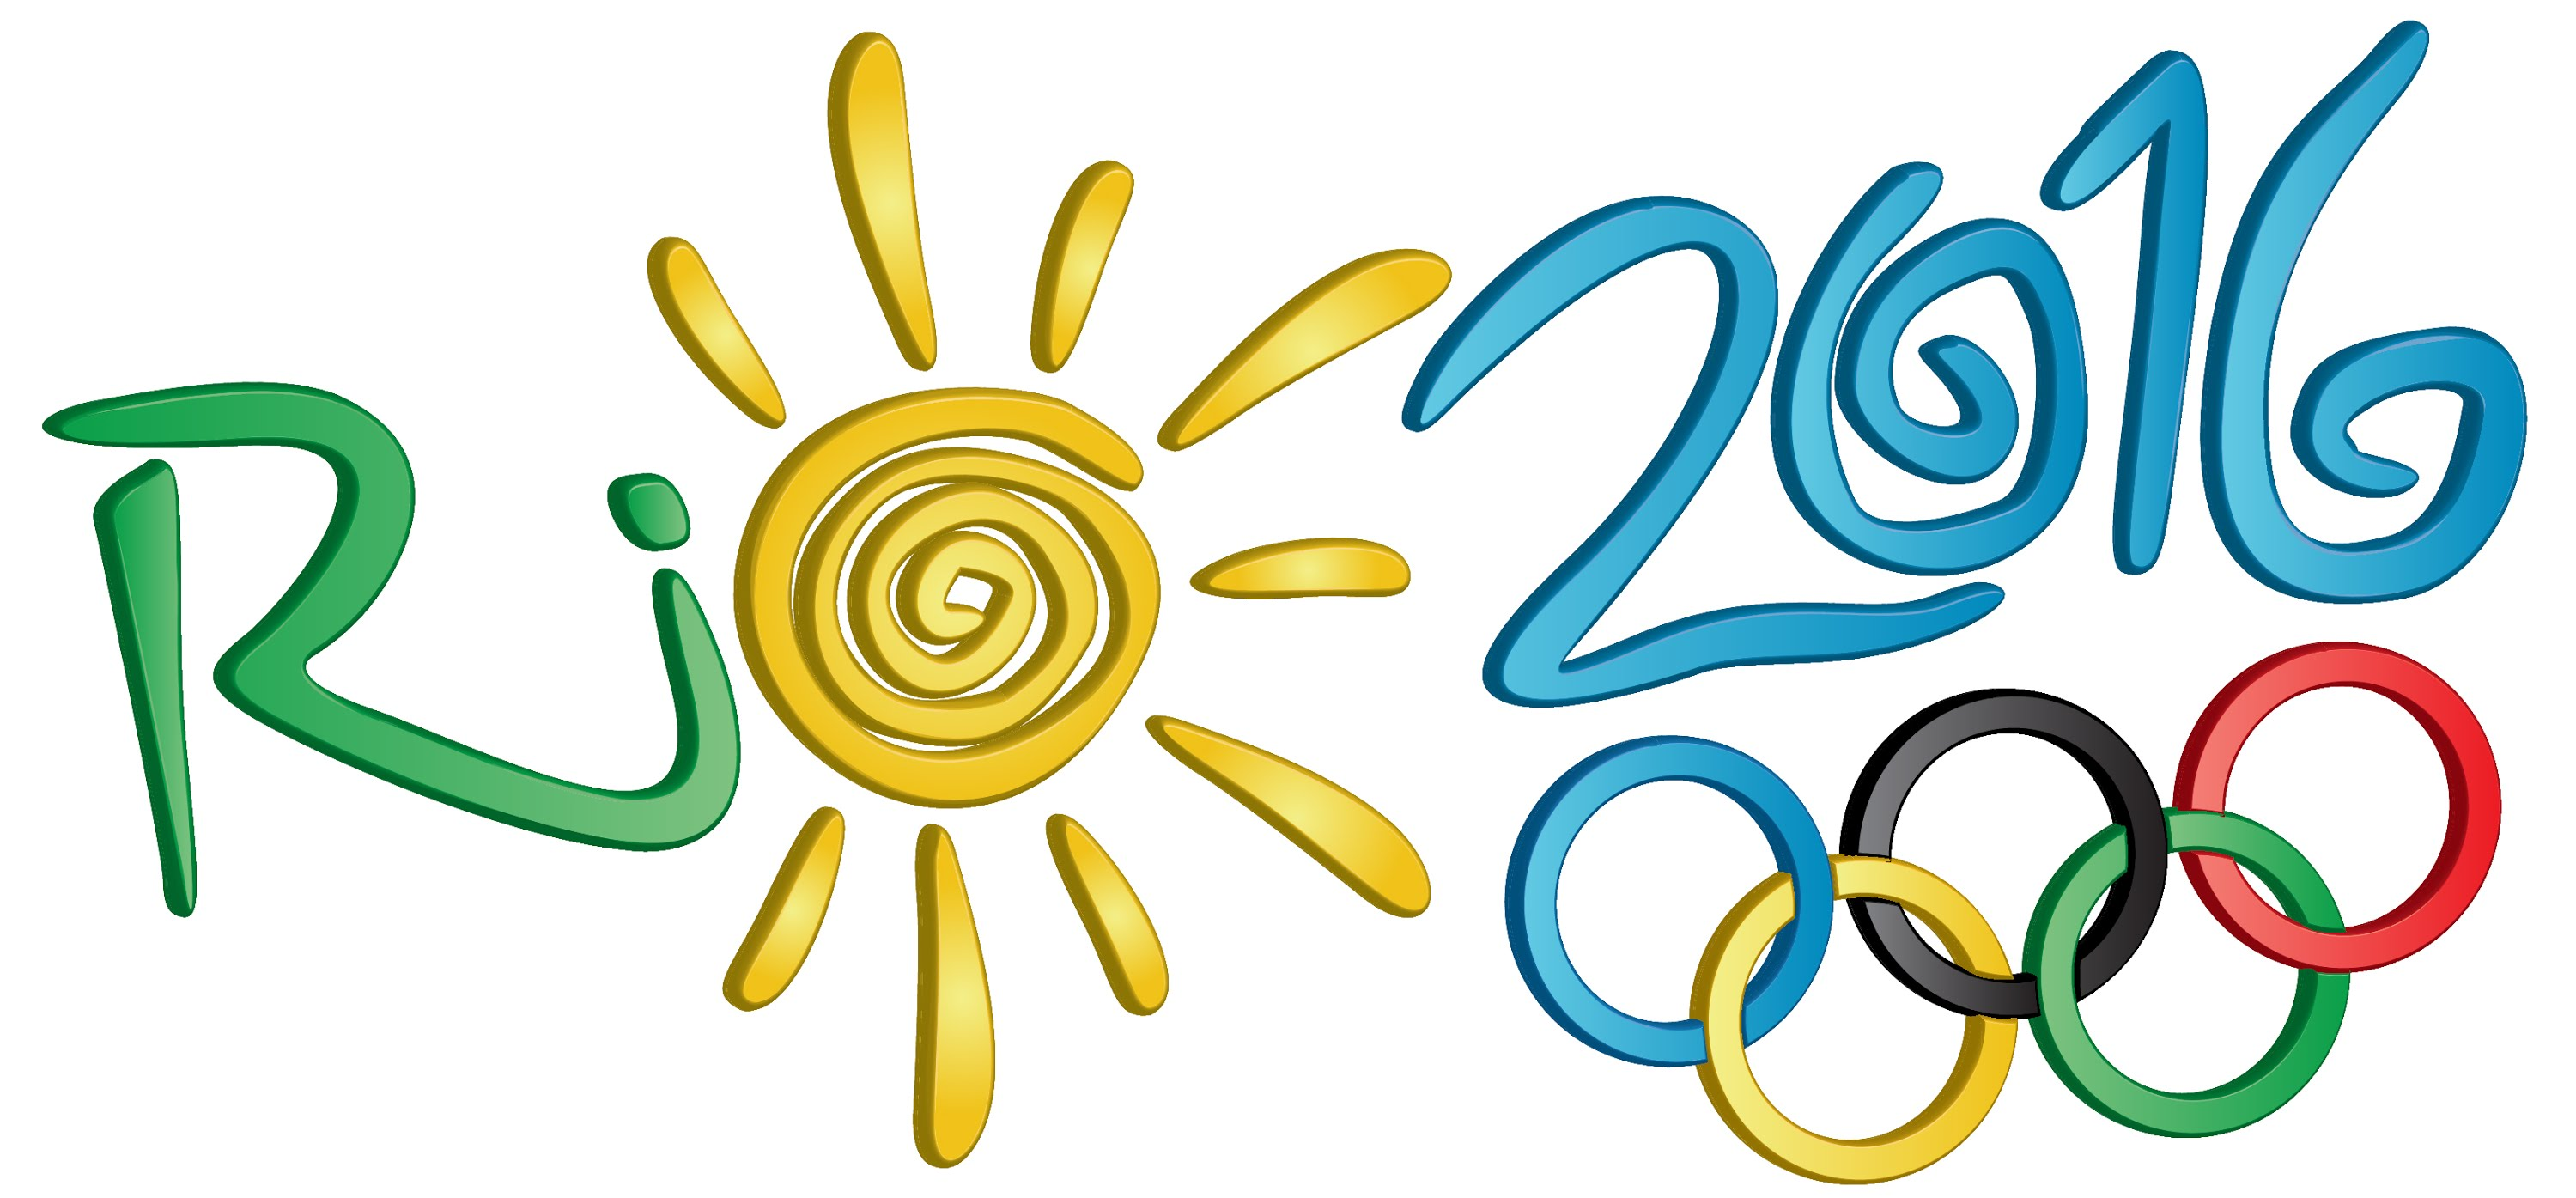 17f0ed06c1b Rio 2016 - Summer Olympics Rio 2016 - Research Guides at Whitworth ...